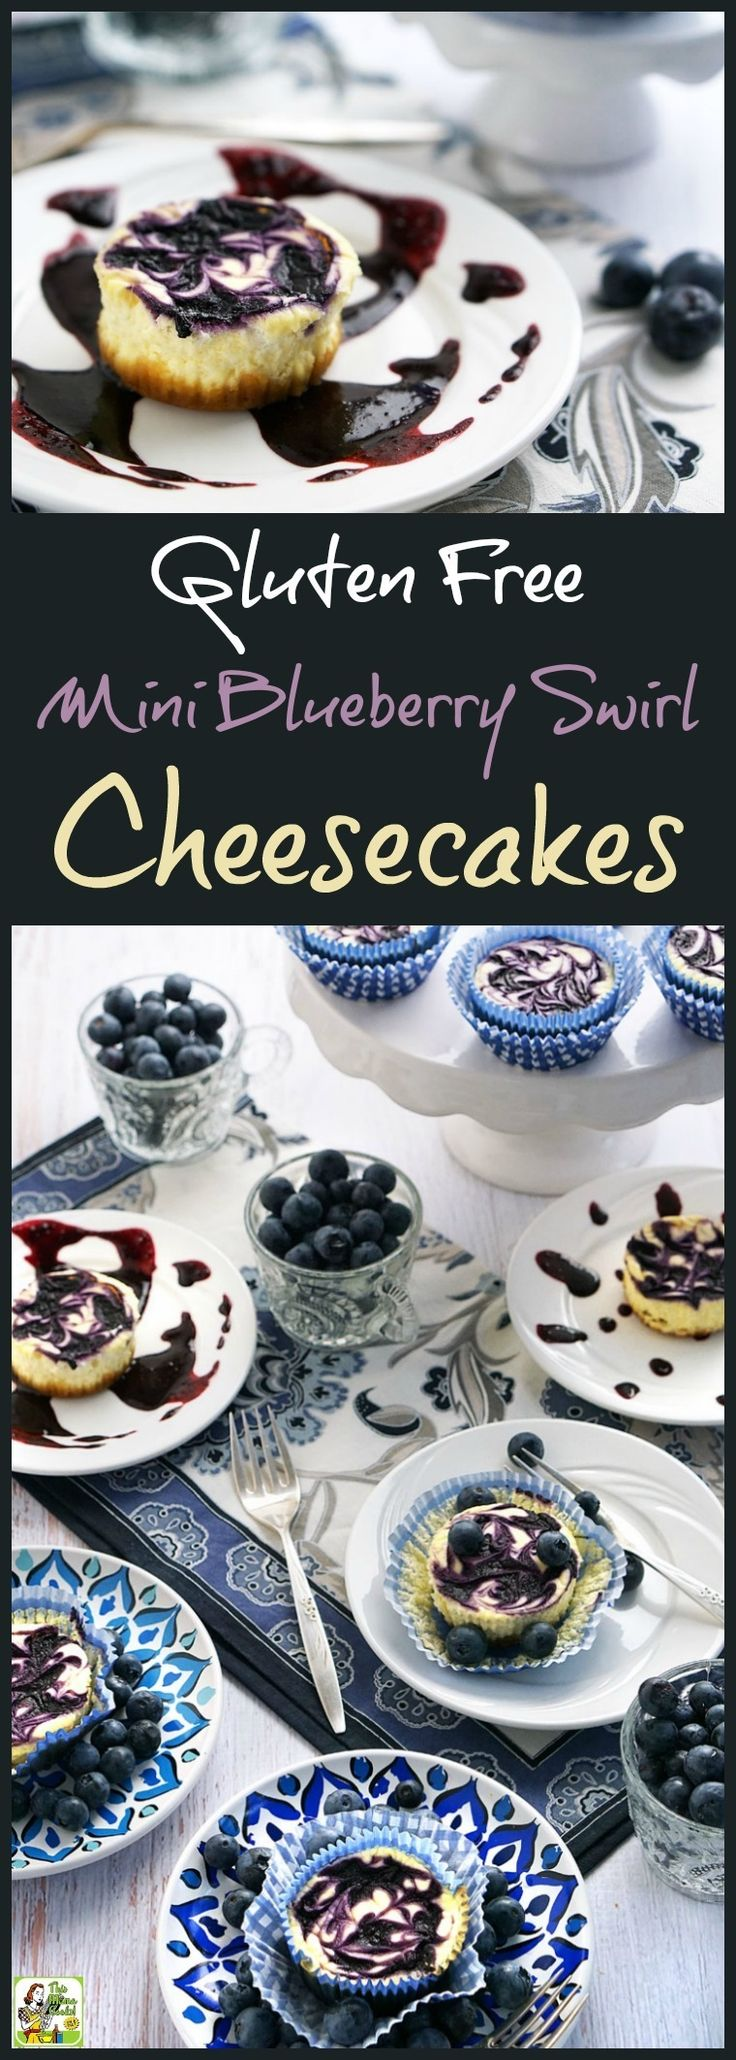 Looking for an easy gluten free cheesecake recipe that's also low in sugar and calories? Try this easy to make Gluten Free Mini Blueberry Swirl Cheesecakes recipe! It's a guilt free dessert recipe because these fresh blueberry mini cheesecake cupcakes are